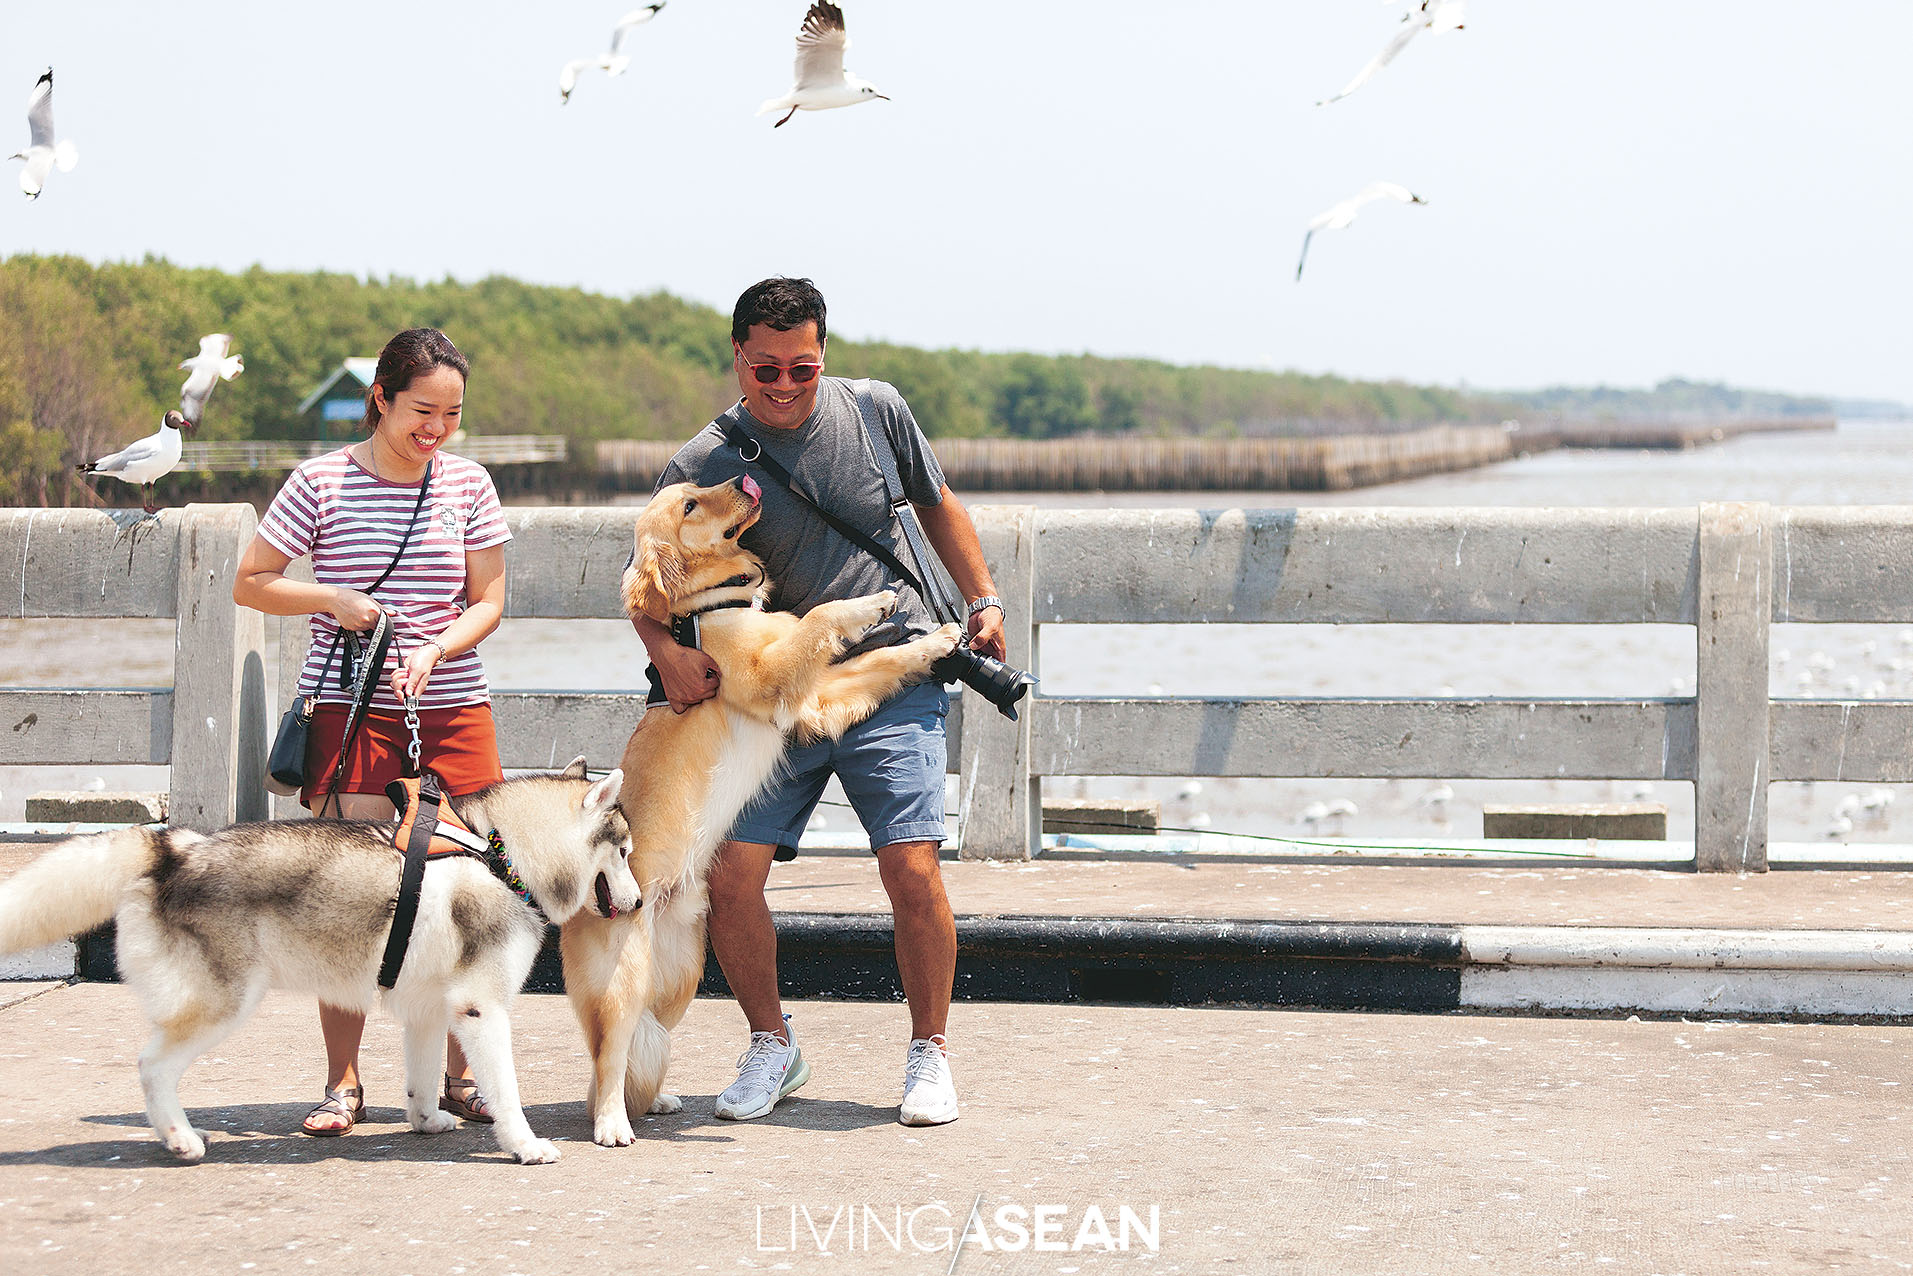 Even dogs need a vacation. Jobby, Whan and their four-legged friends are on a bird watching trip to Bang Pu, Samut Prakarn, which is only a short drive from where they live.